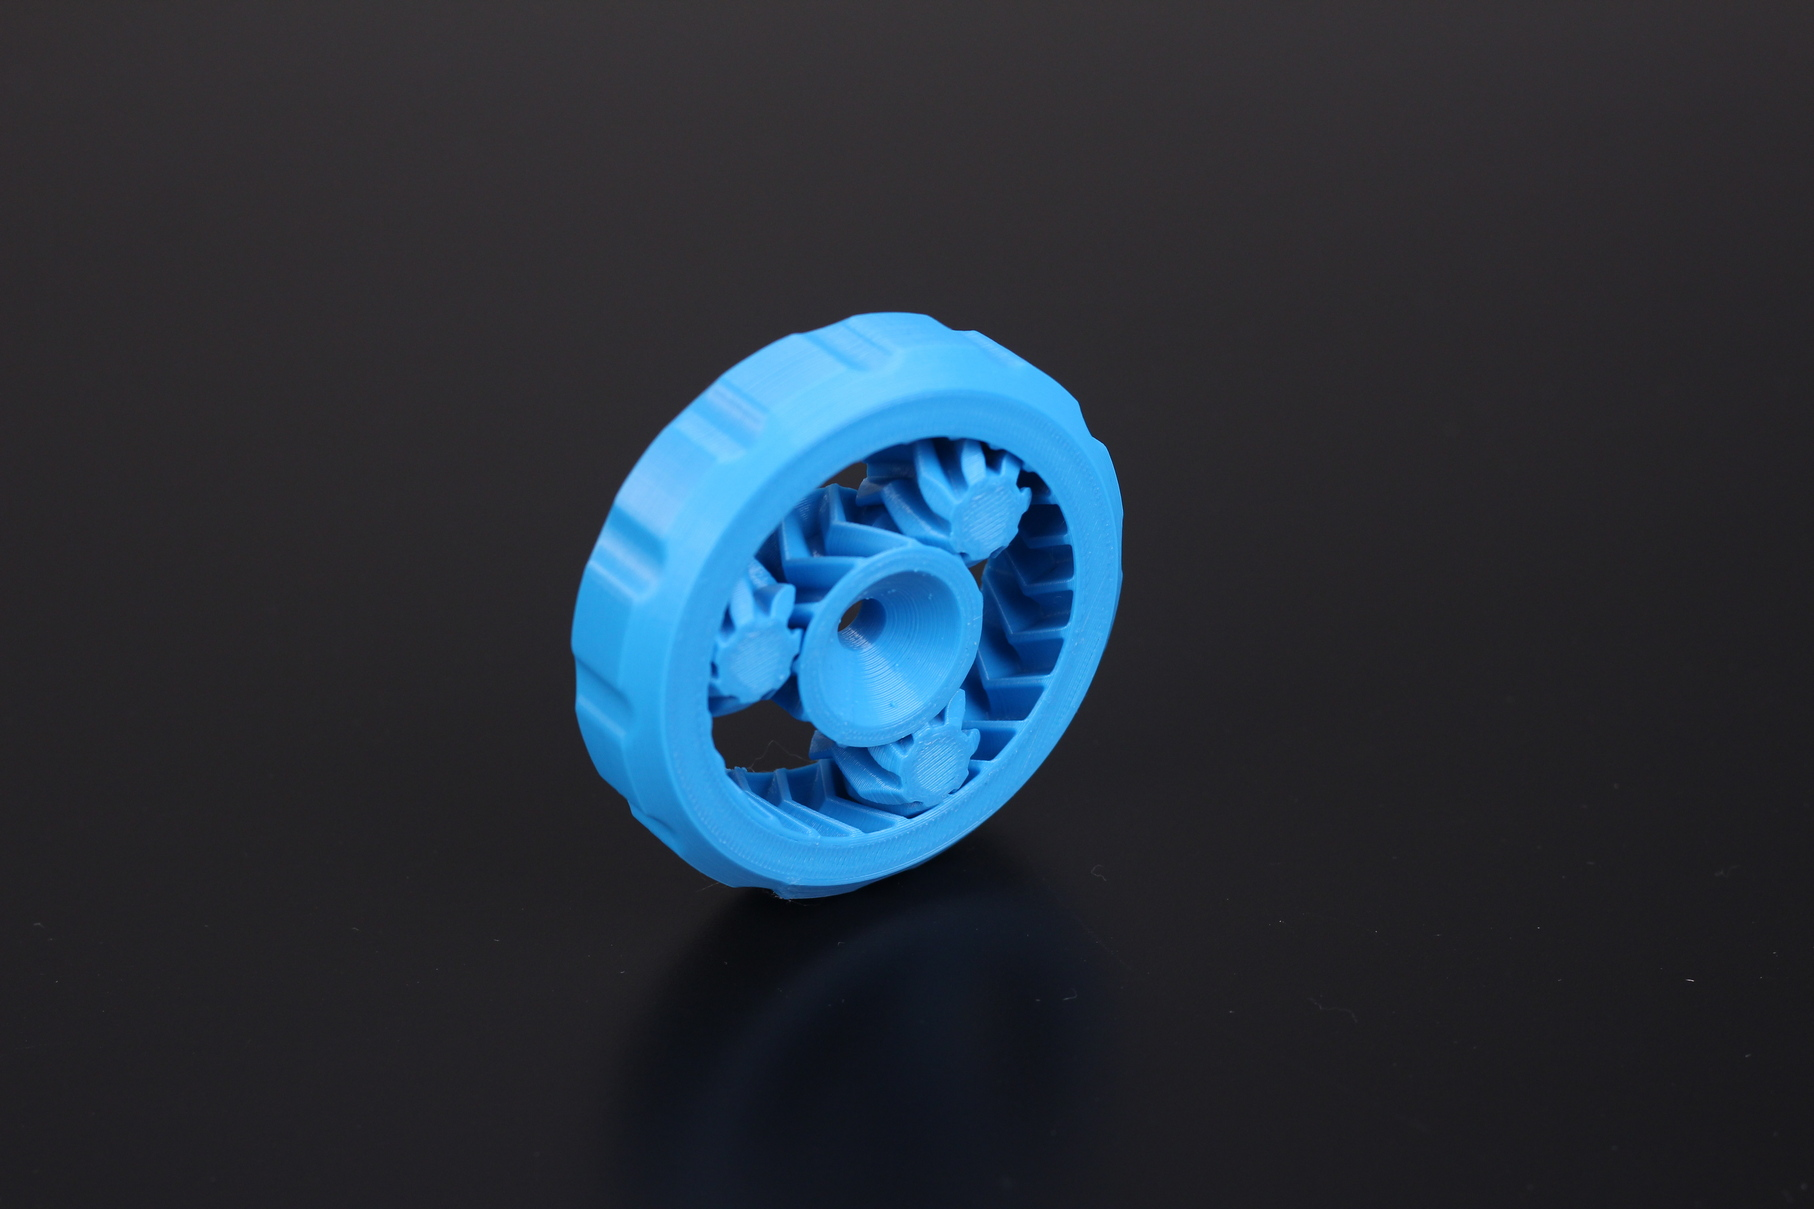 Epicyclic-Tester-printed-in-PETG-3